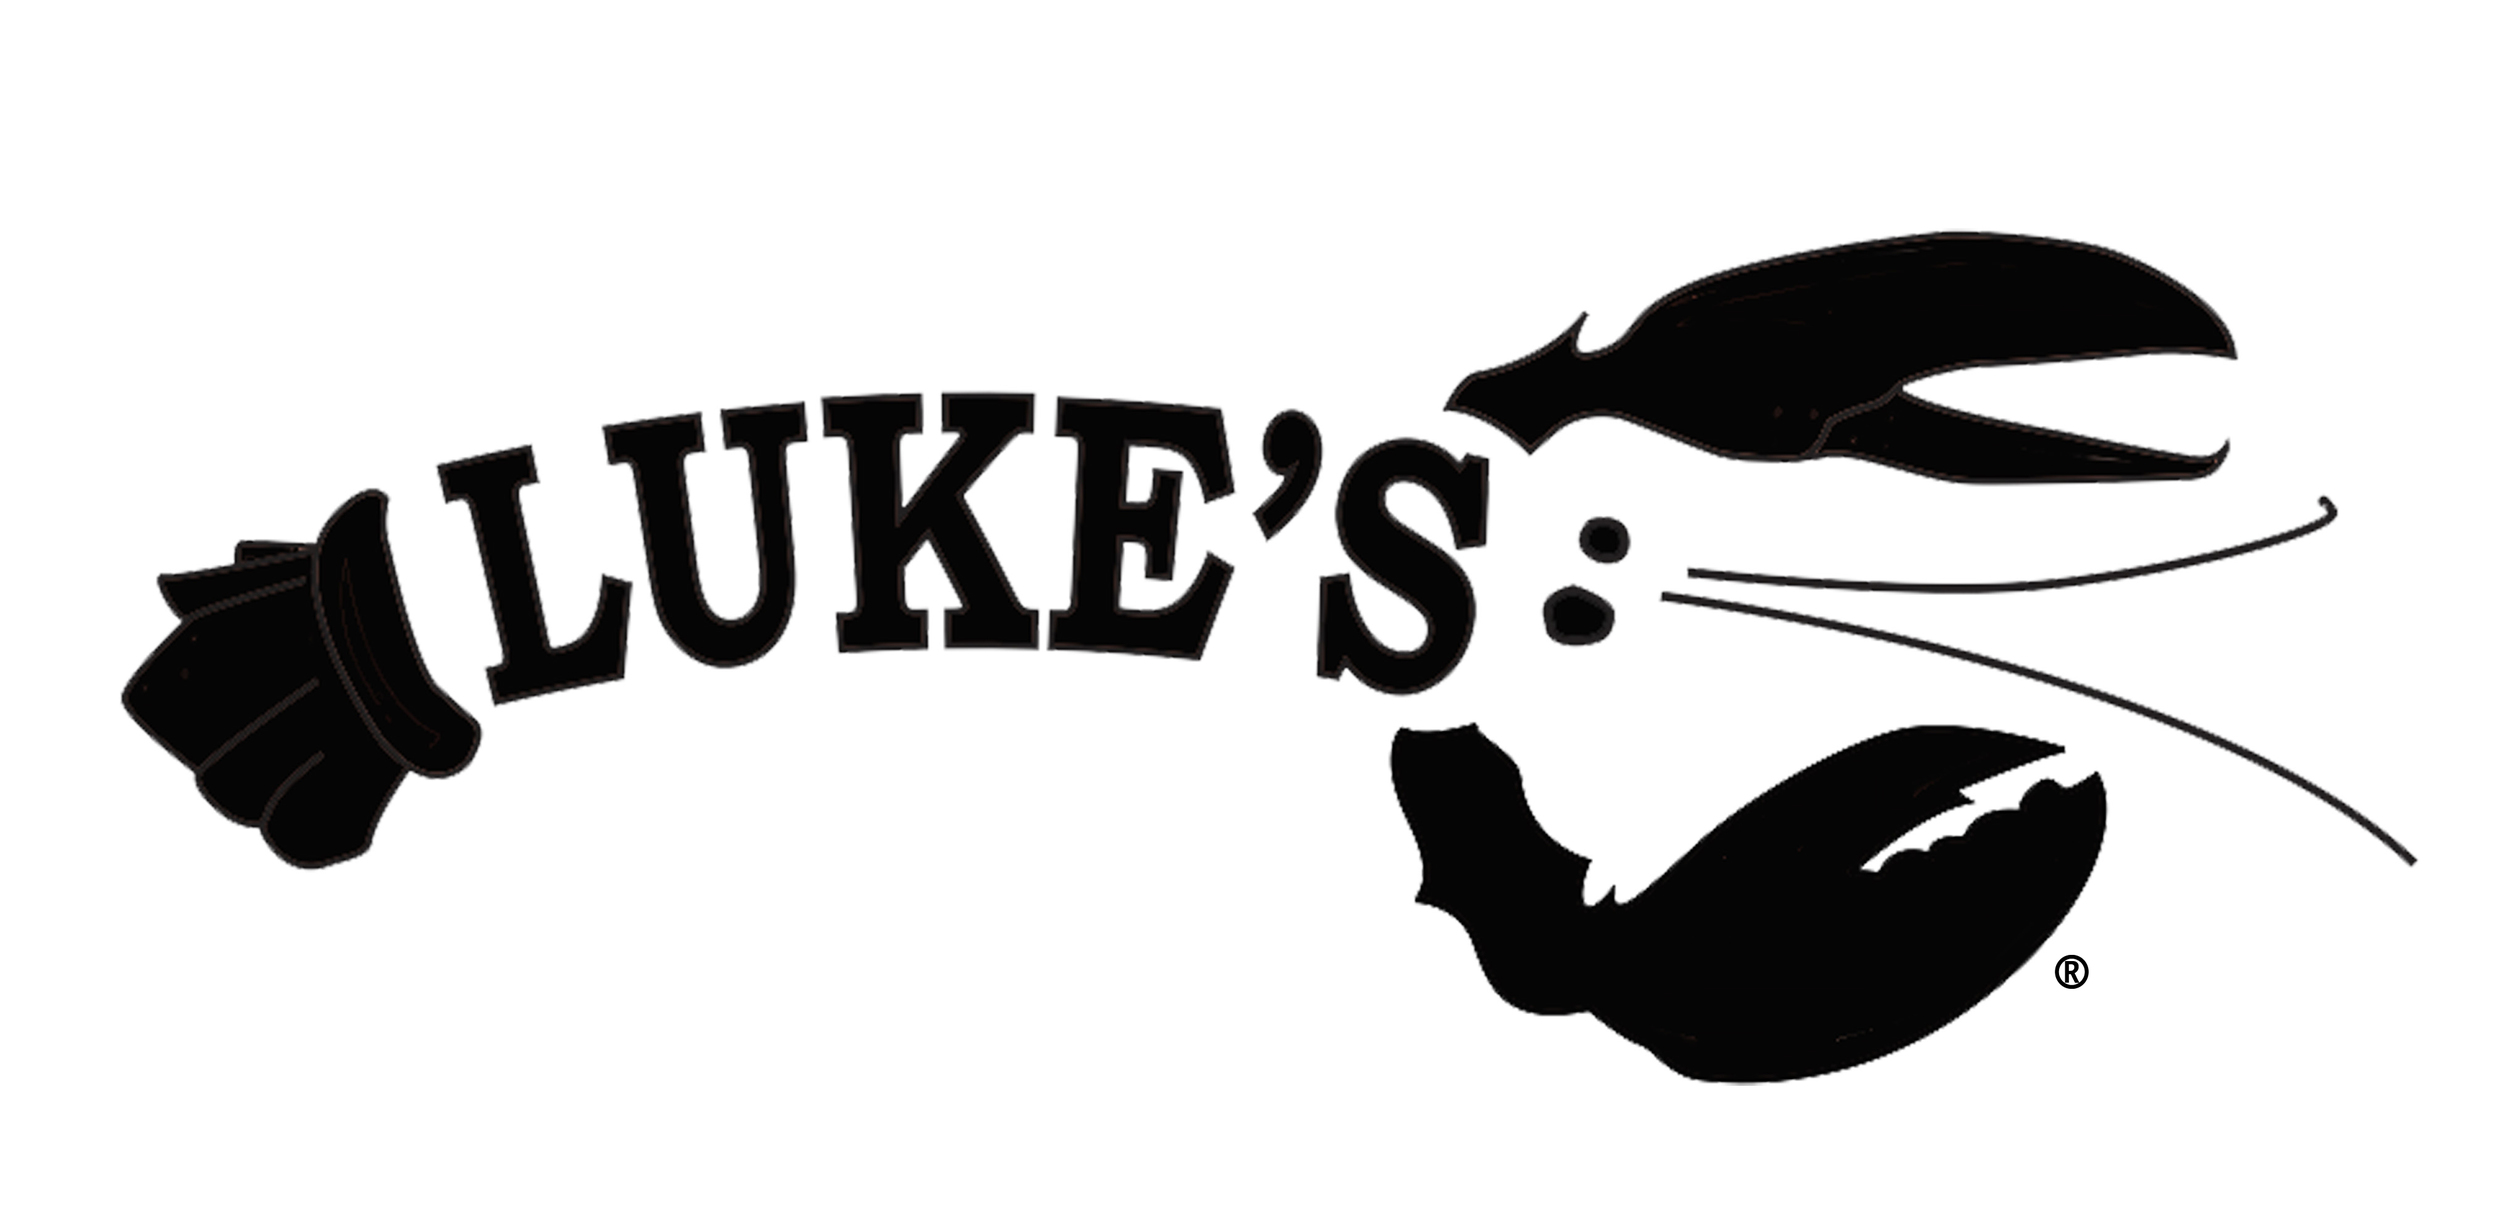 lukes-lobster-food-truck-logo